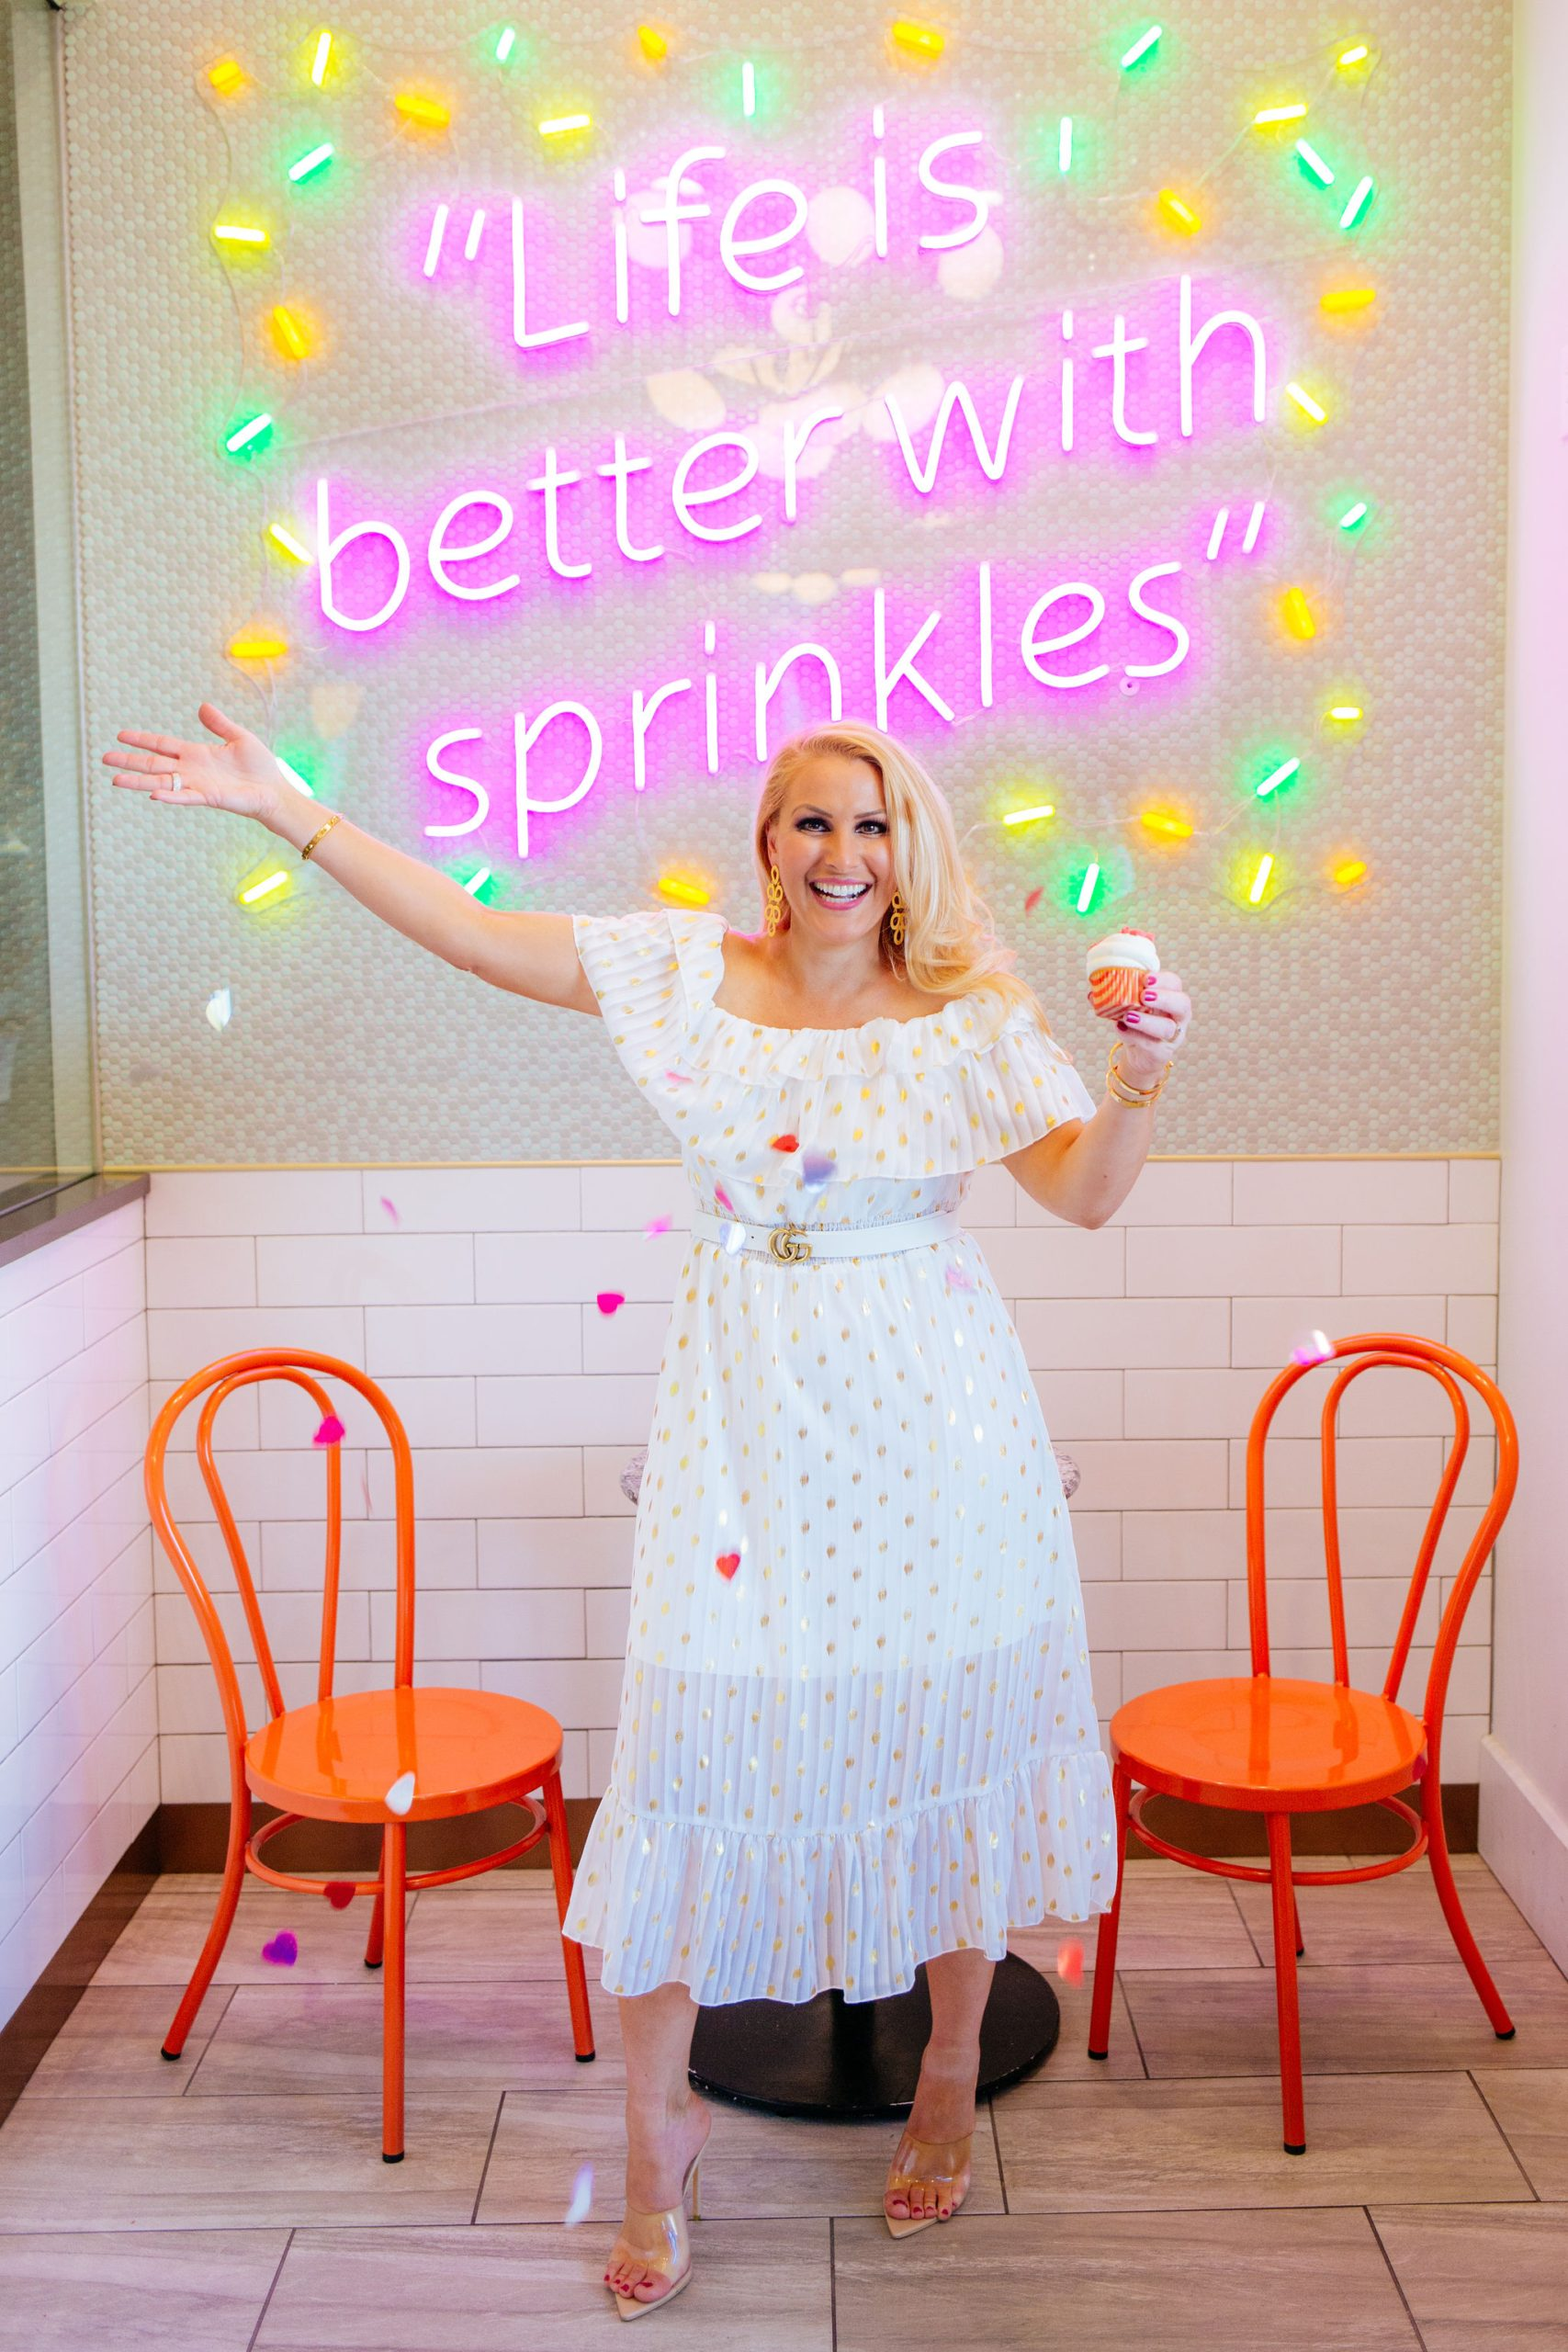 Tampa Fashion blogger Jenn Truman @jtstjtst11 is holding a cupcake and throwing heart confetti as she stands in from of the lit sign that says Life is Better with Sprinkles. She is wearing a white off the shoulder dress with gold dots from Amazon fashion, clear heels and Gold Lisi Lerch earrings.